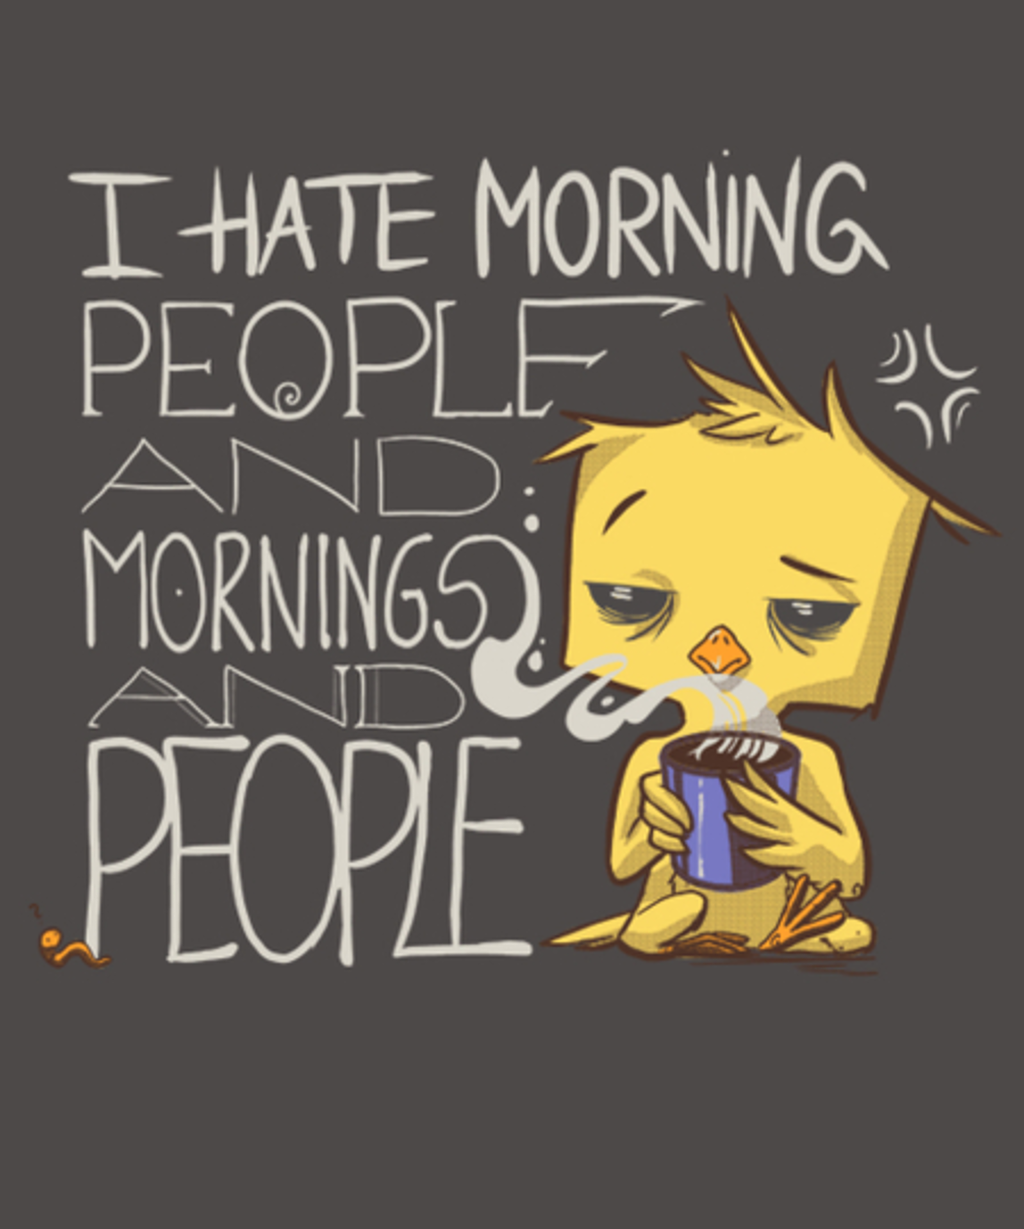 Qwertee: I hate morning people